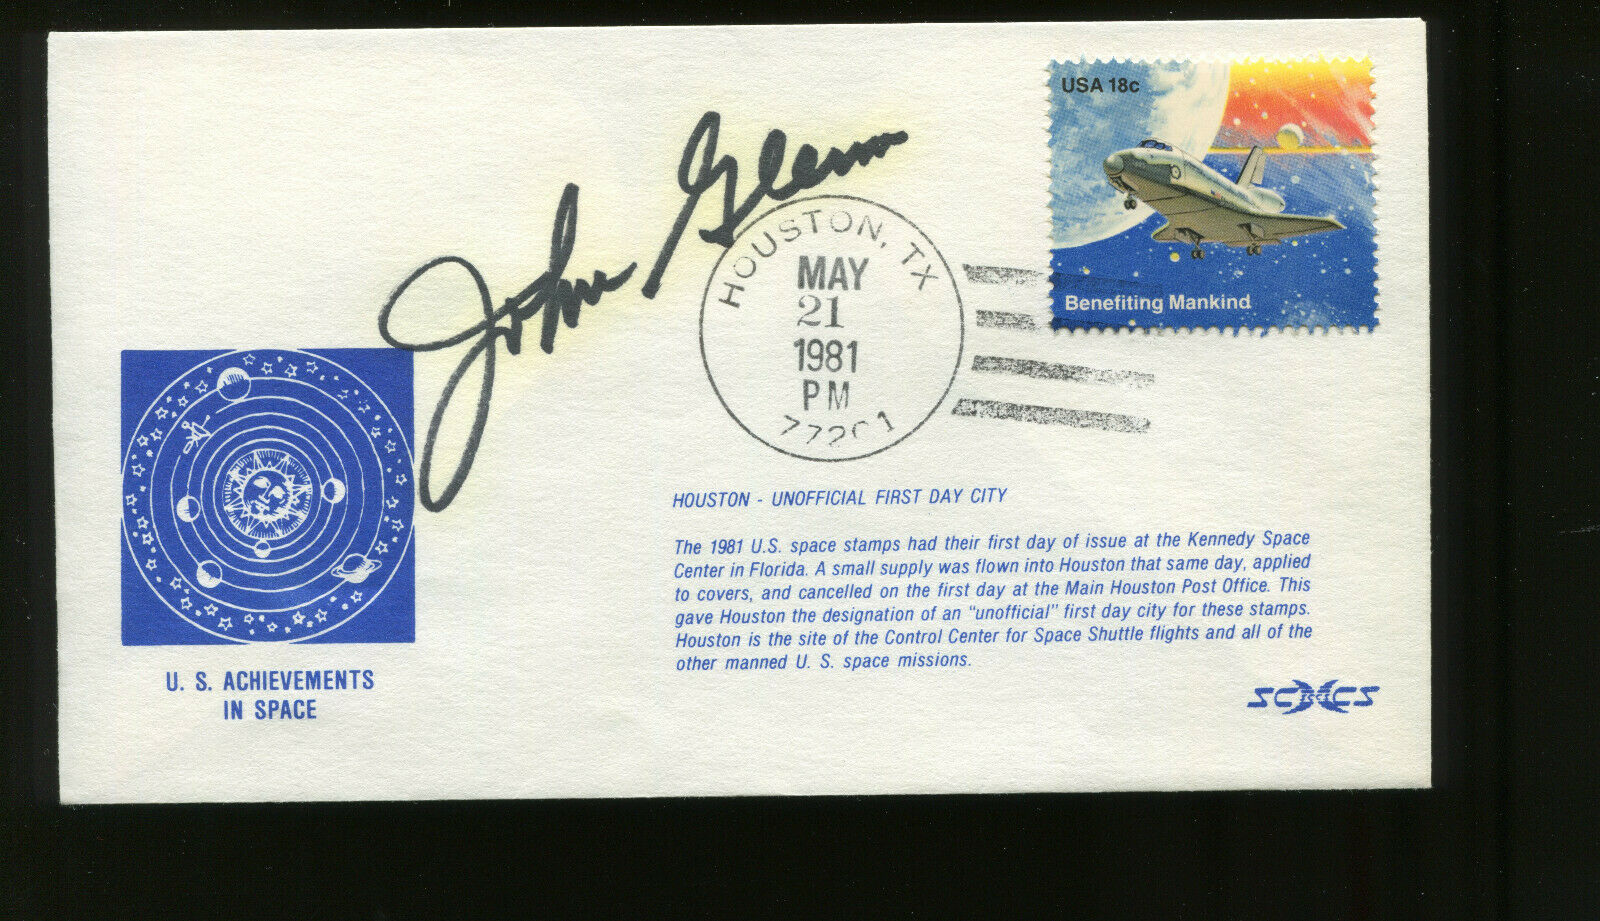 s l1600 - Astronaut JOHN GLENN Signed May 21, 1981 on Space Achievement FDC